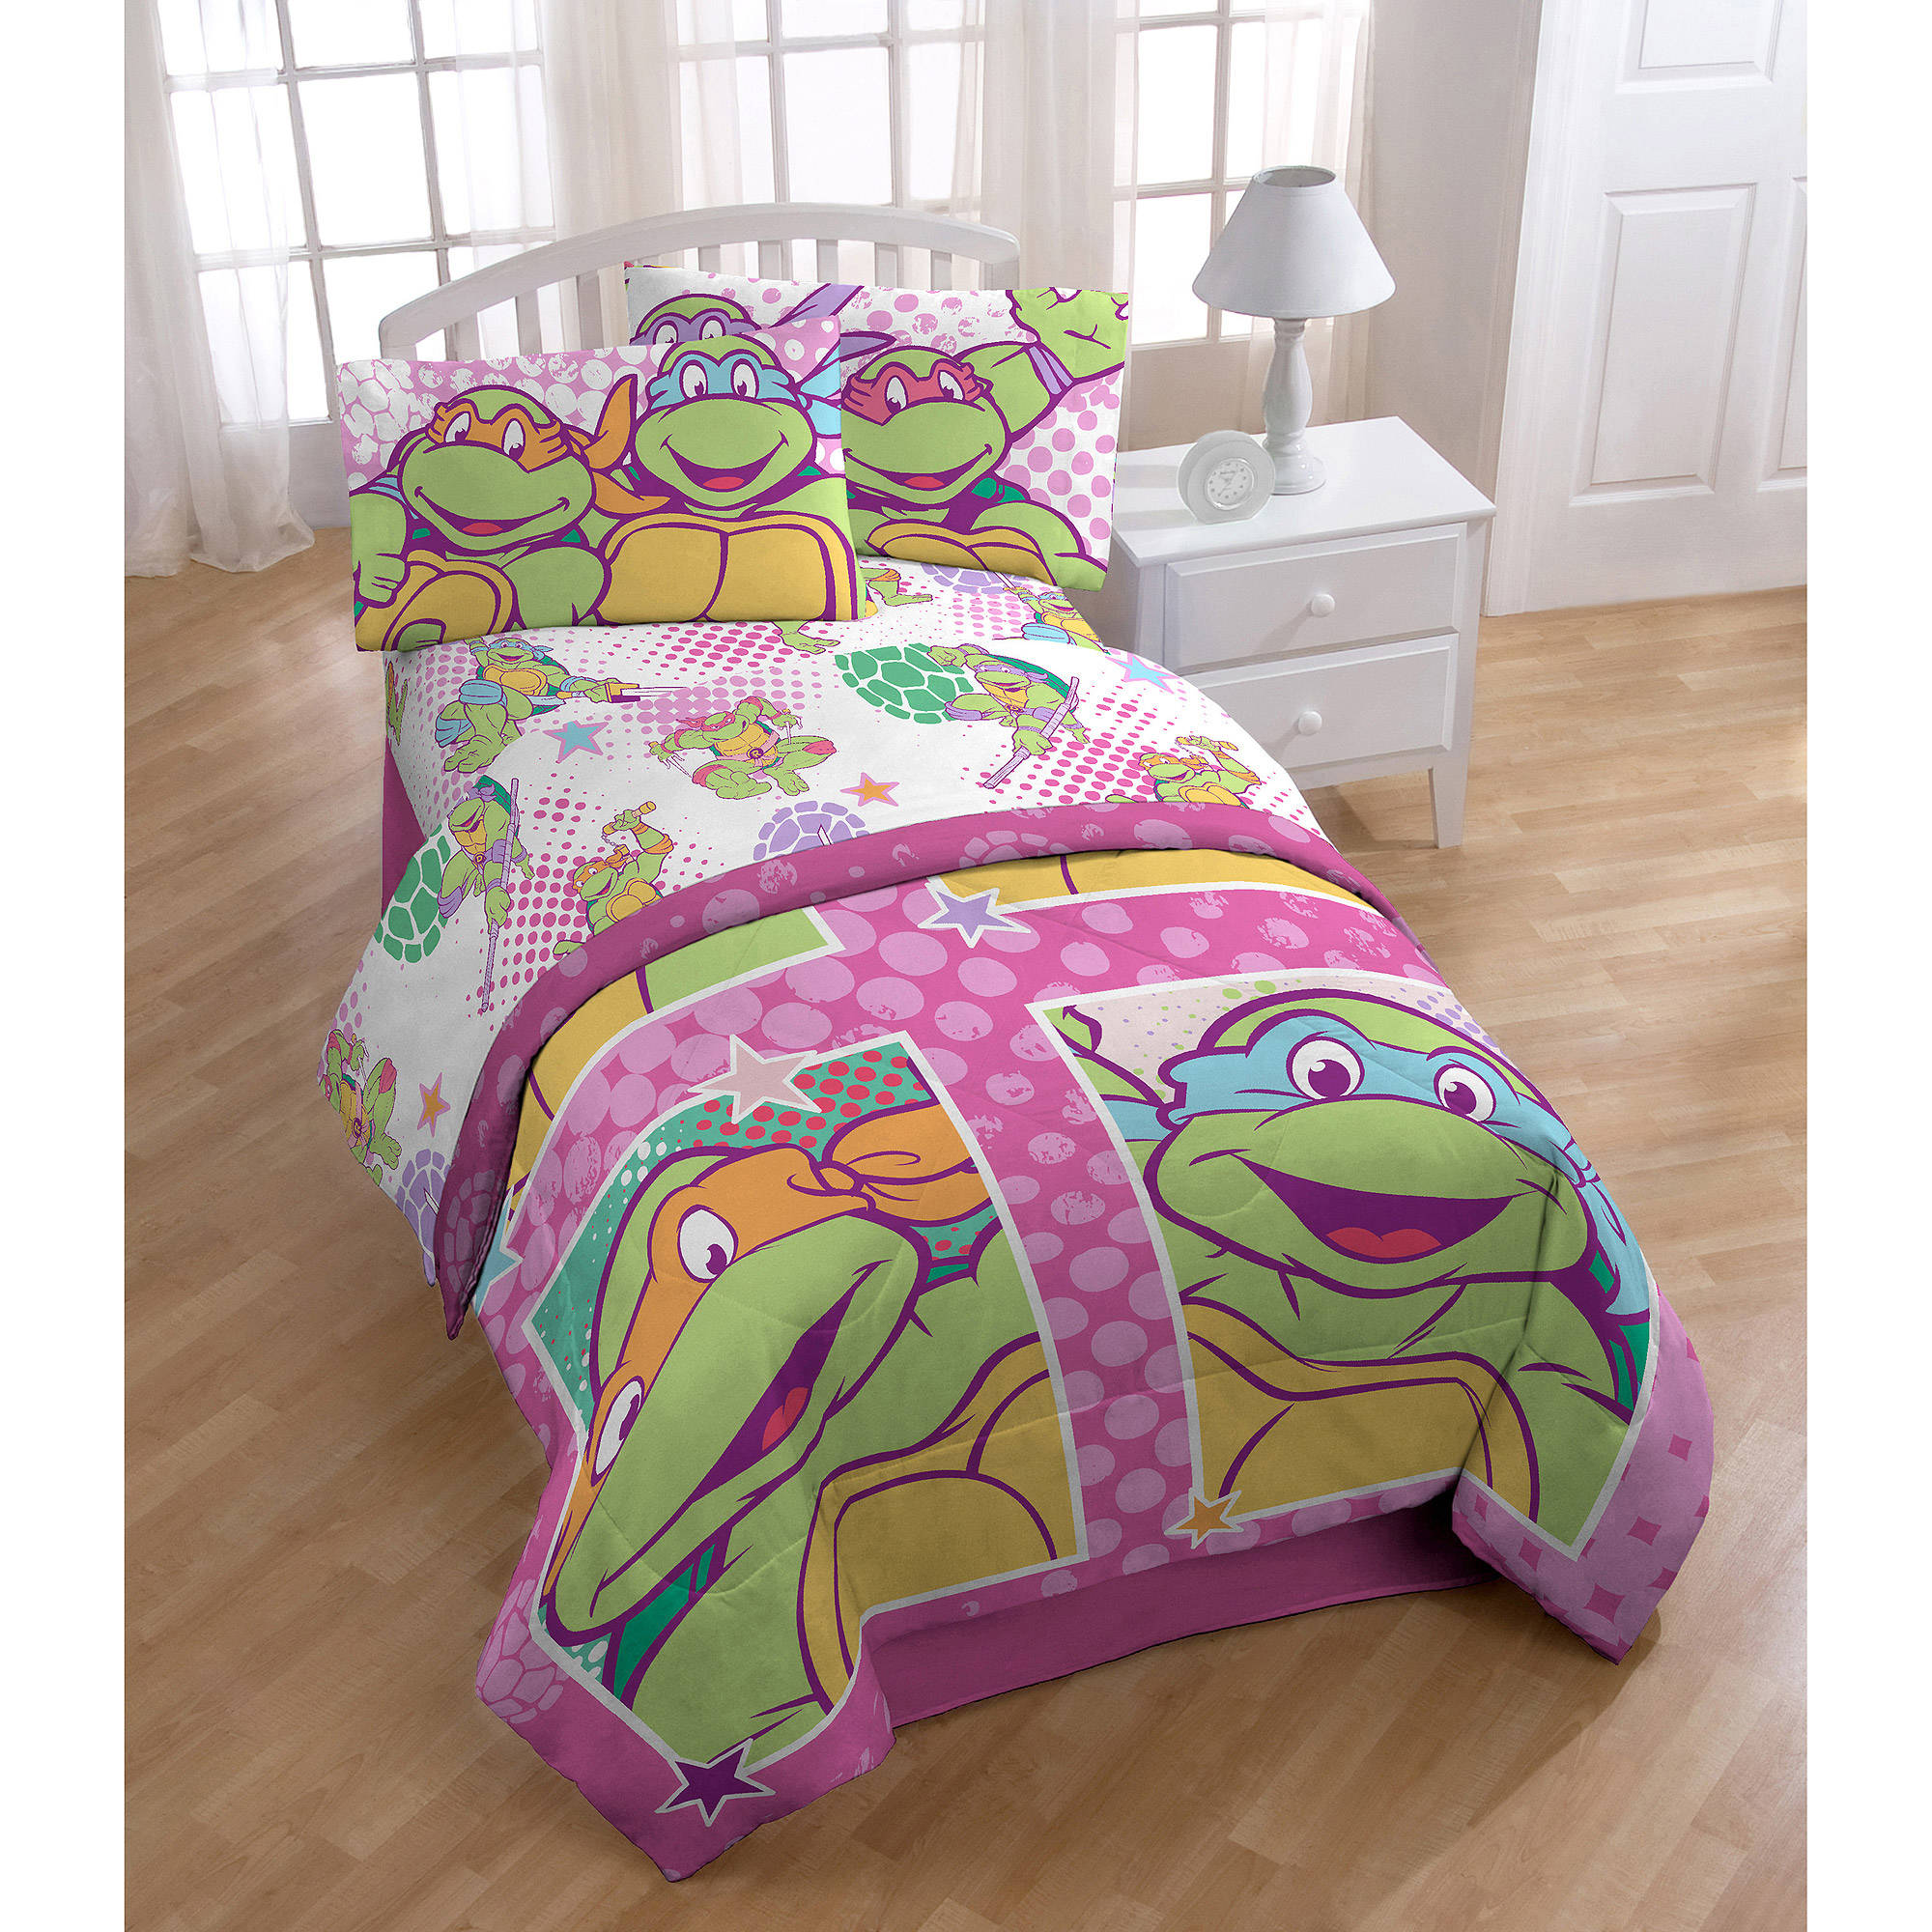 "Nickelodeon Teenage Mutant Ninja Turtles ""SHELLASTIC"" Sheet Set"